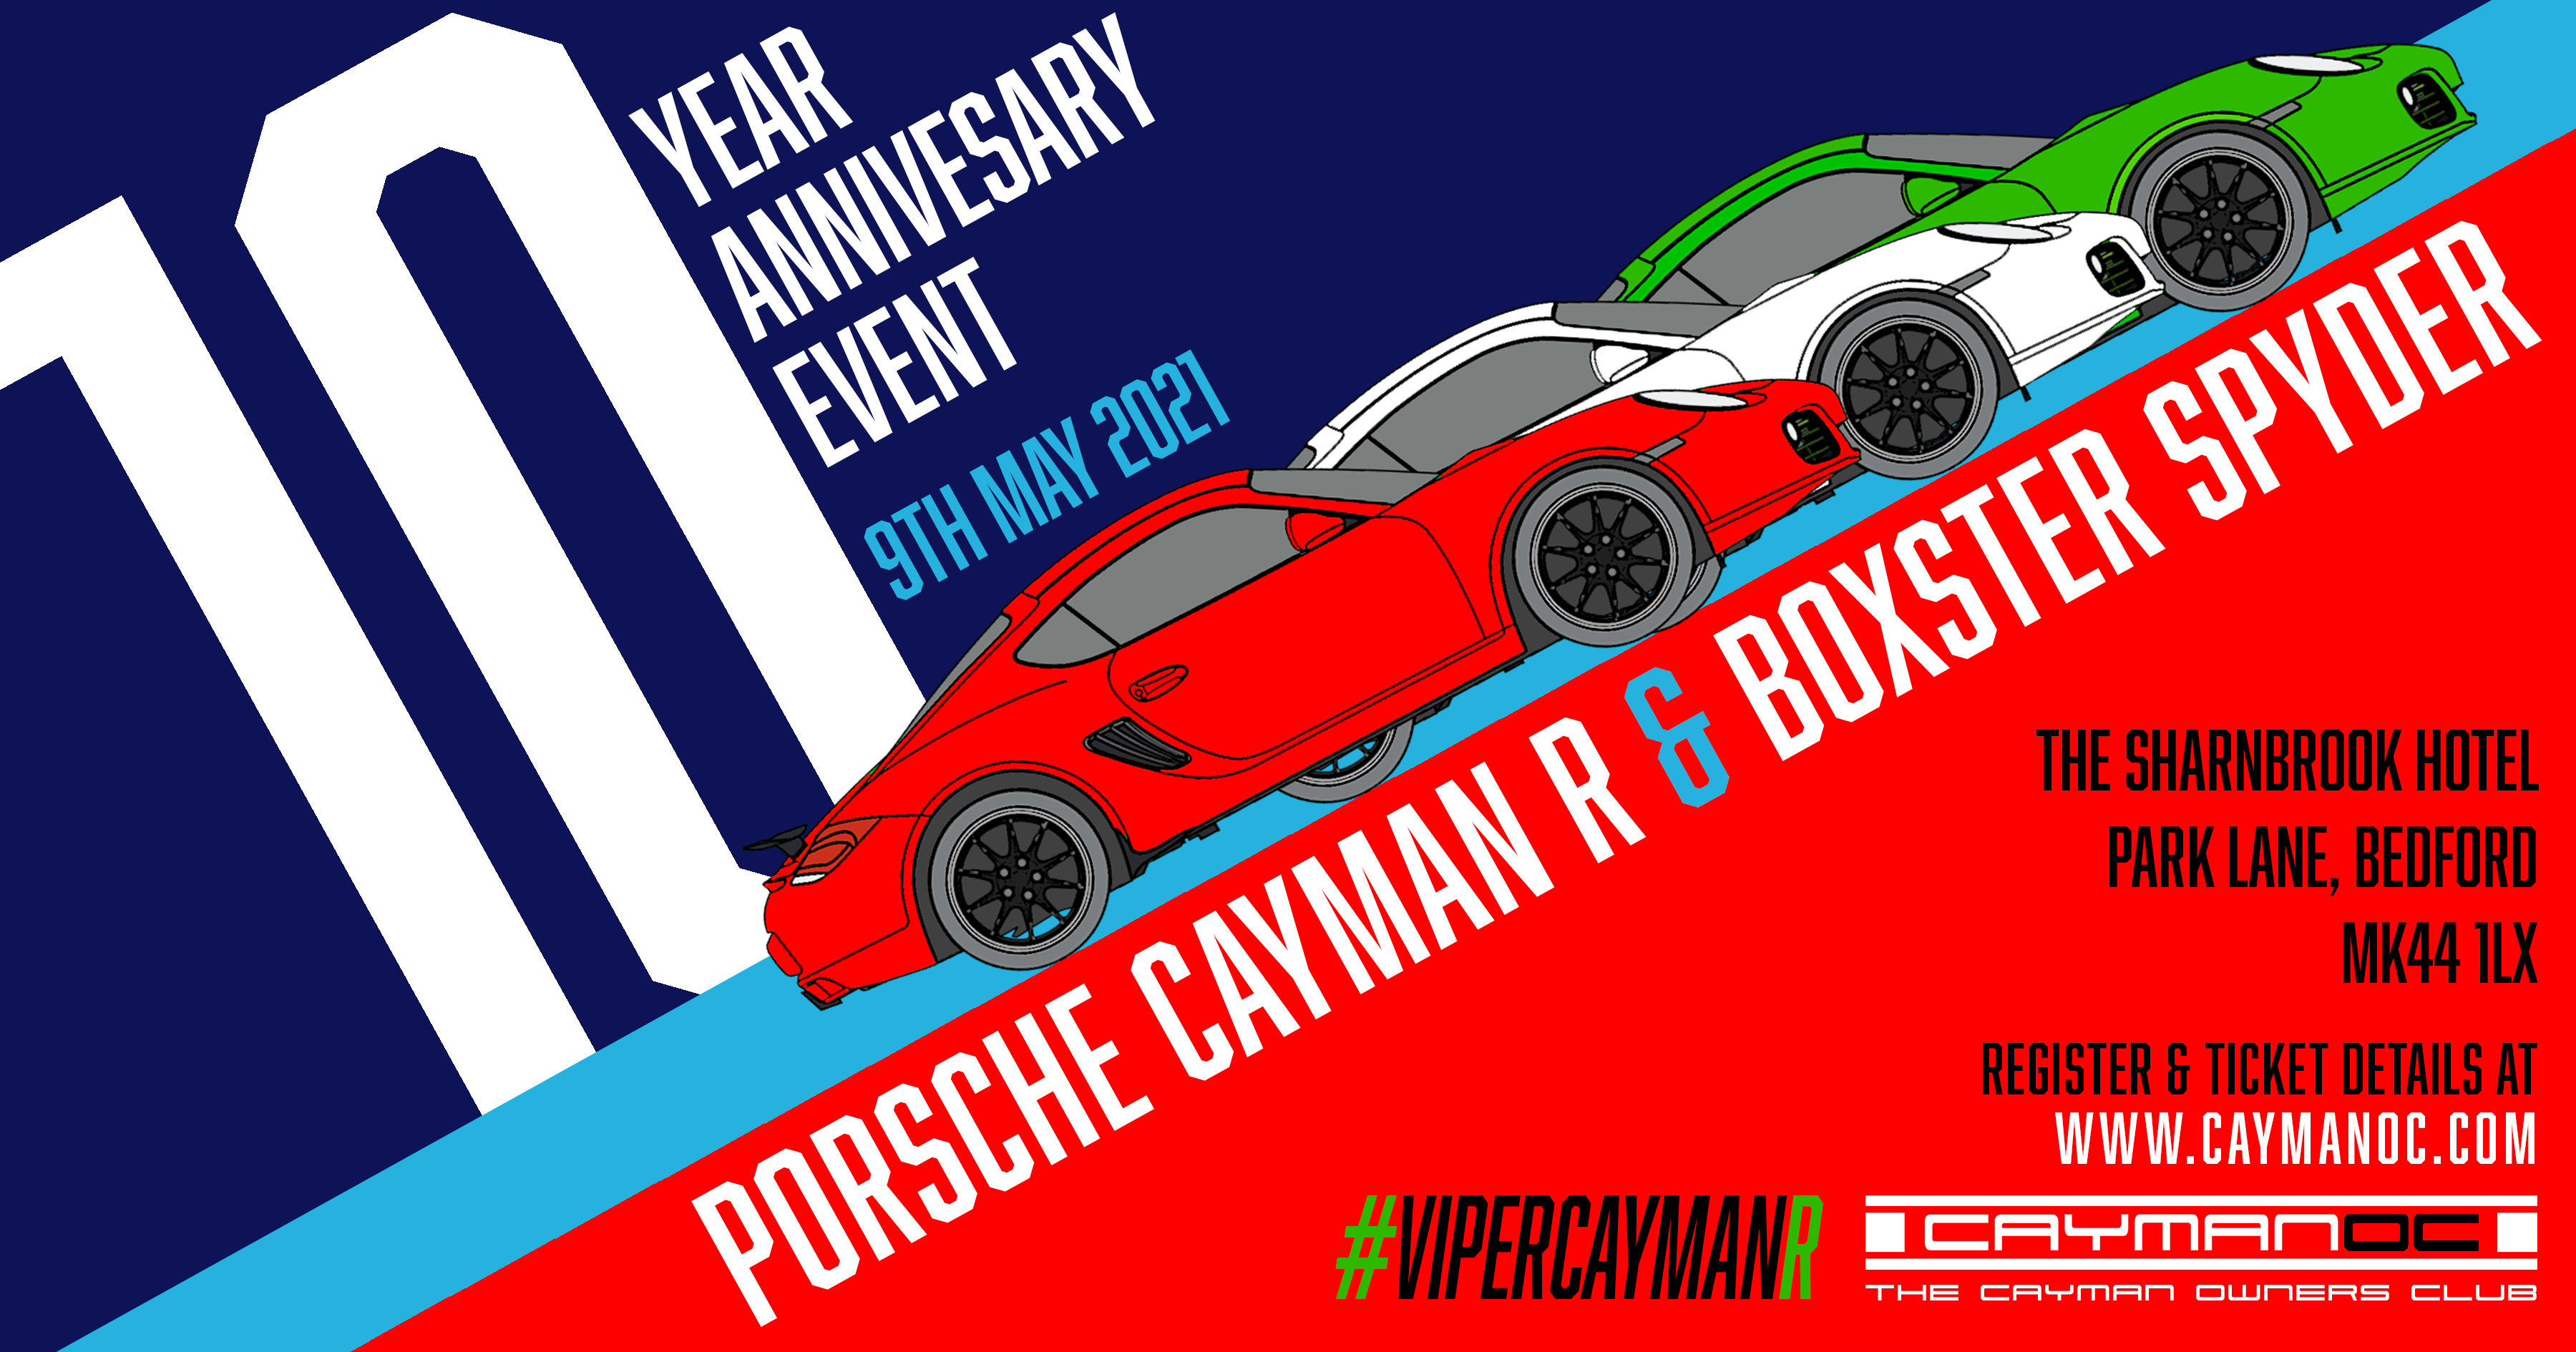 10 year Anniversary Cayman R/987 Spyder meet May 2021.